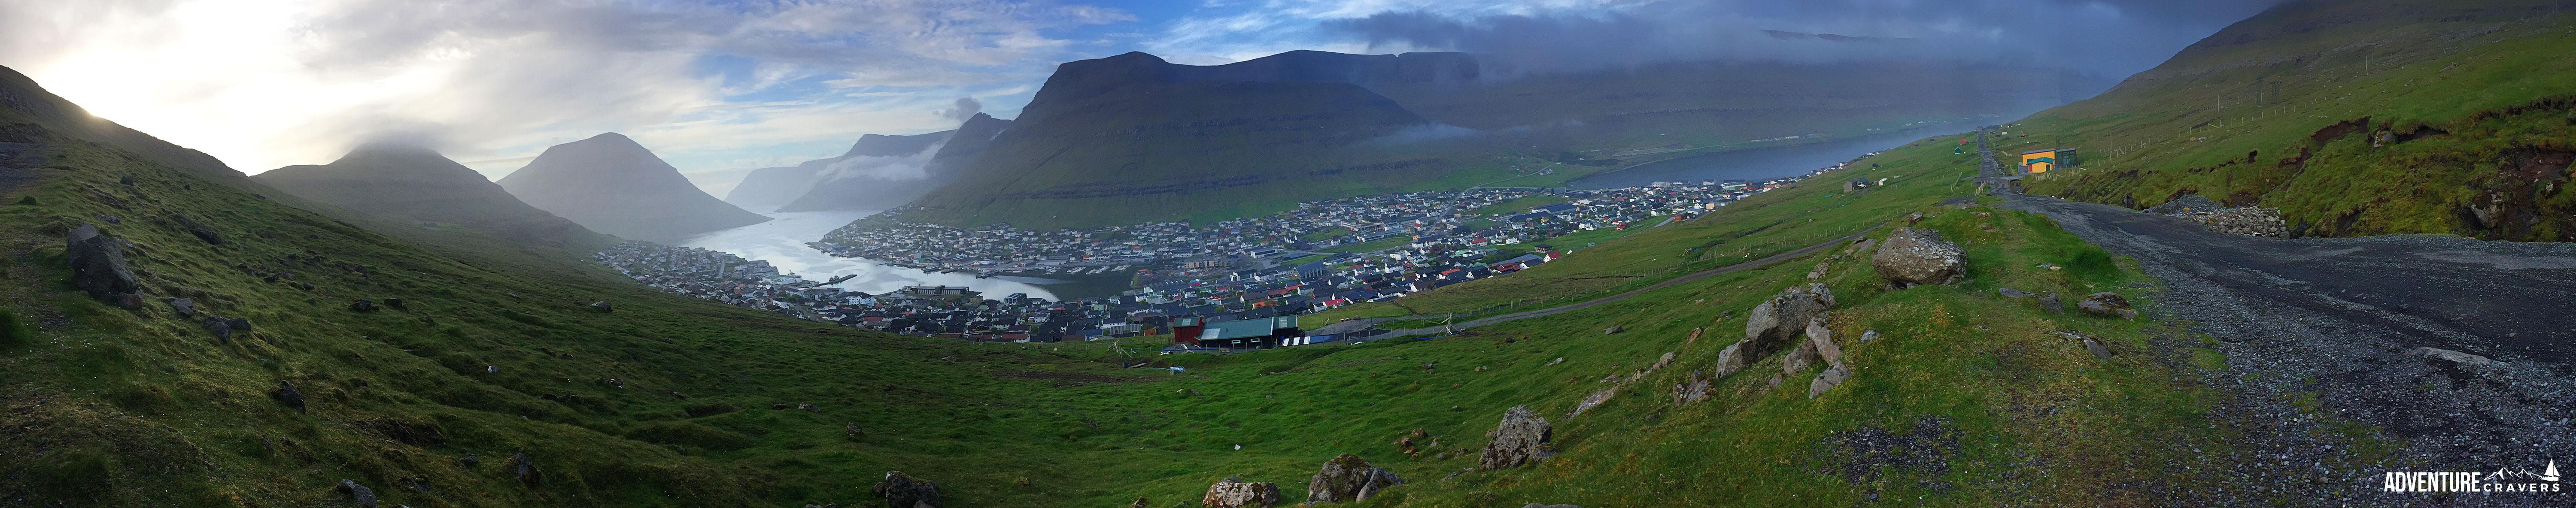 Pano of Klaskvik on our hike above the city